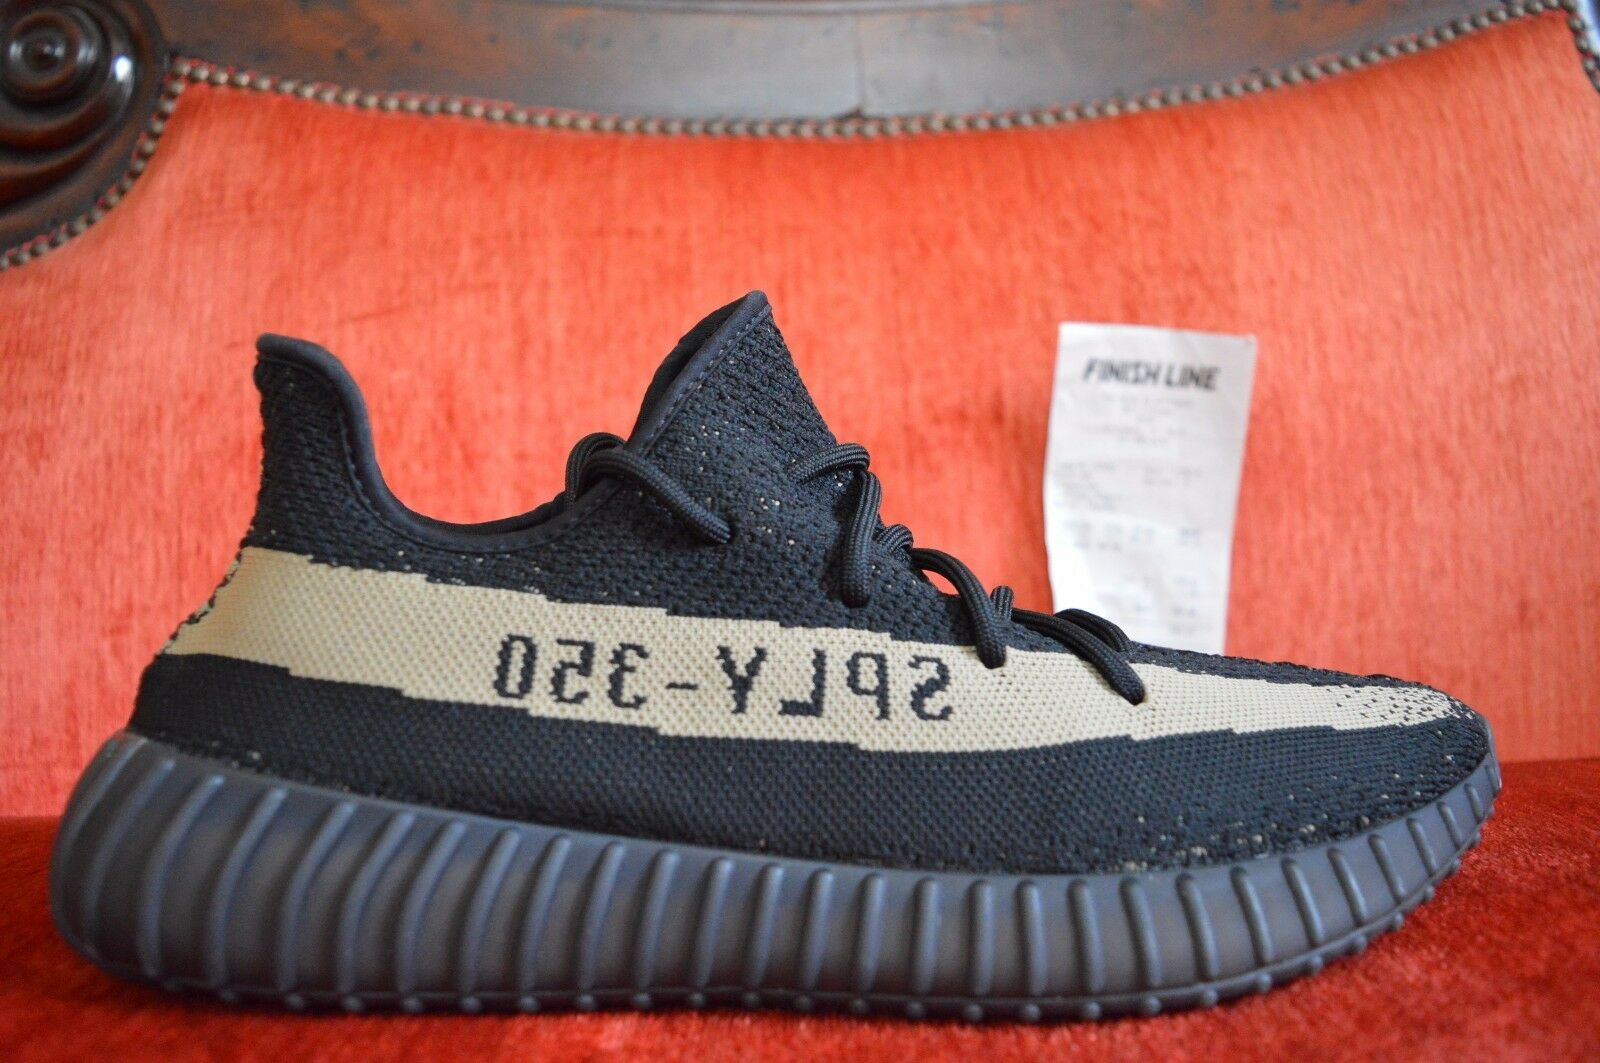 26f87df3d adidas Yeezy 350 V2 Boost SPLY Kanye West Black Green Olive By9611 ...